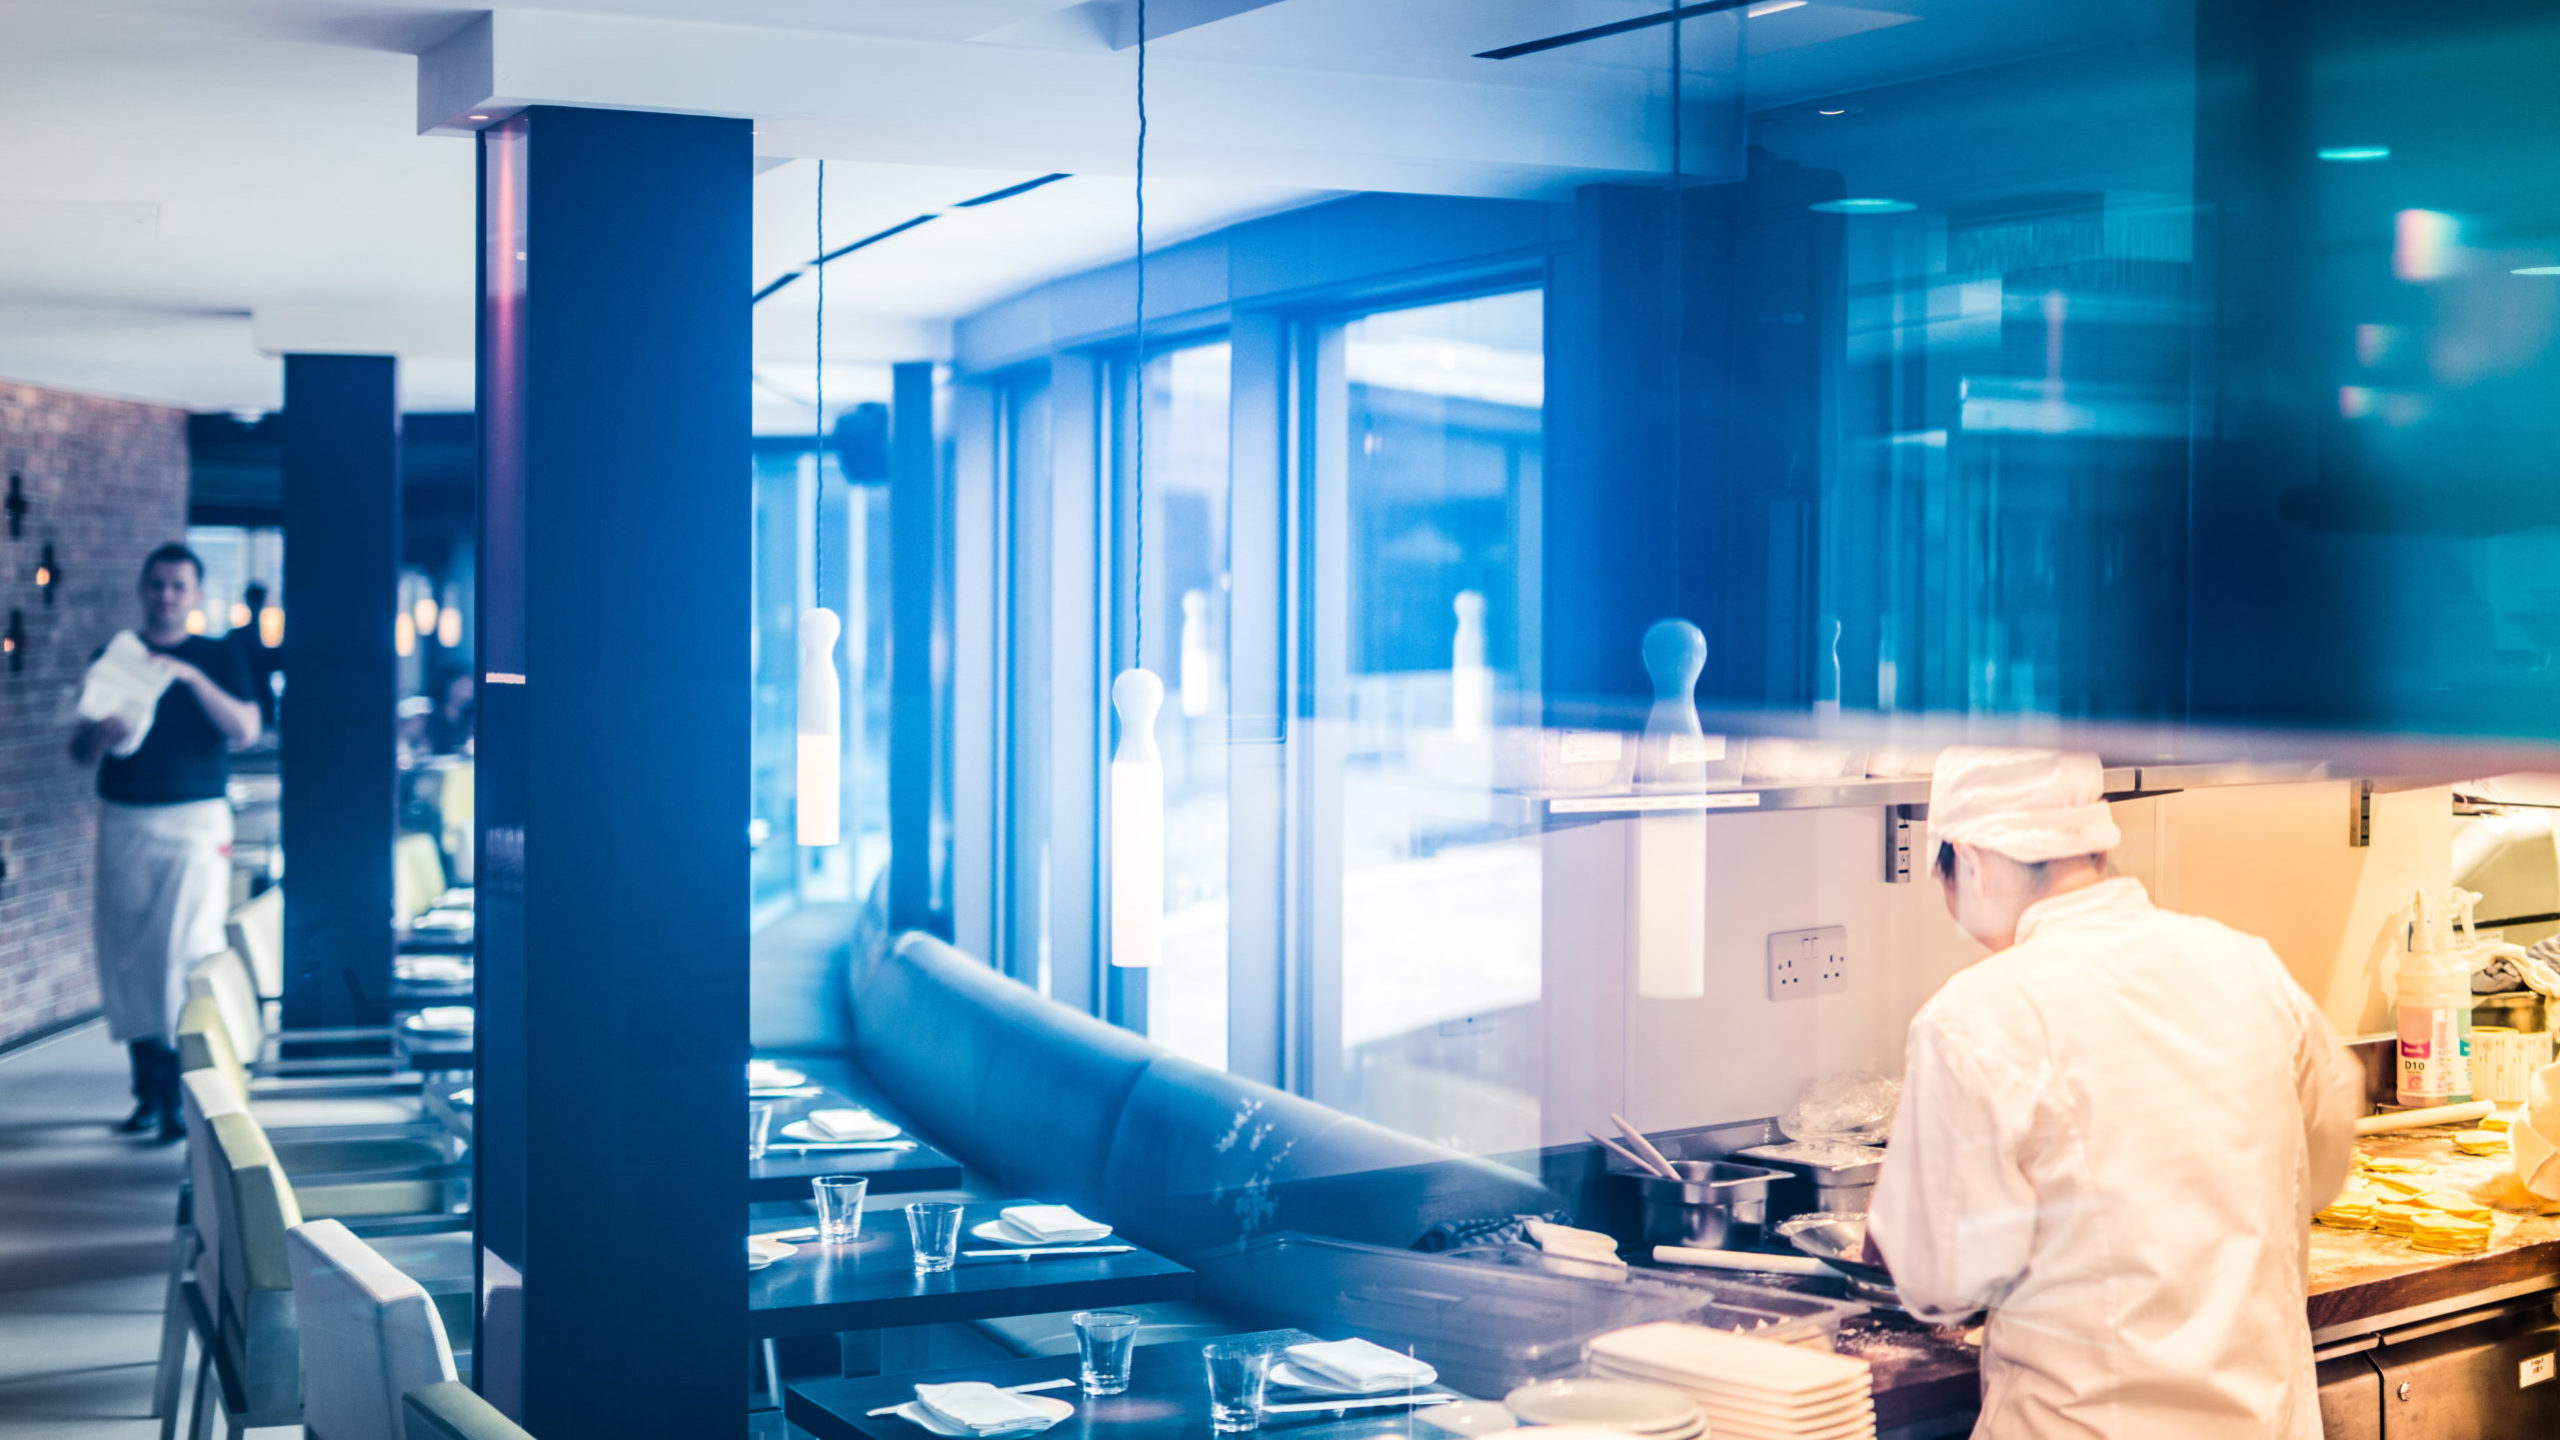 Yauatcha City Interior of Dining Room and Kitchen with Employees